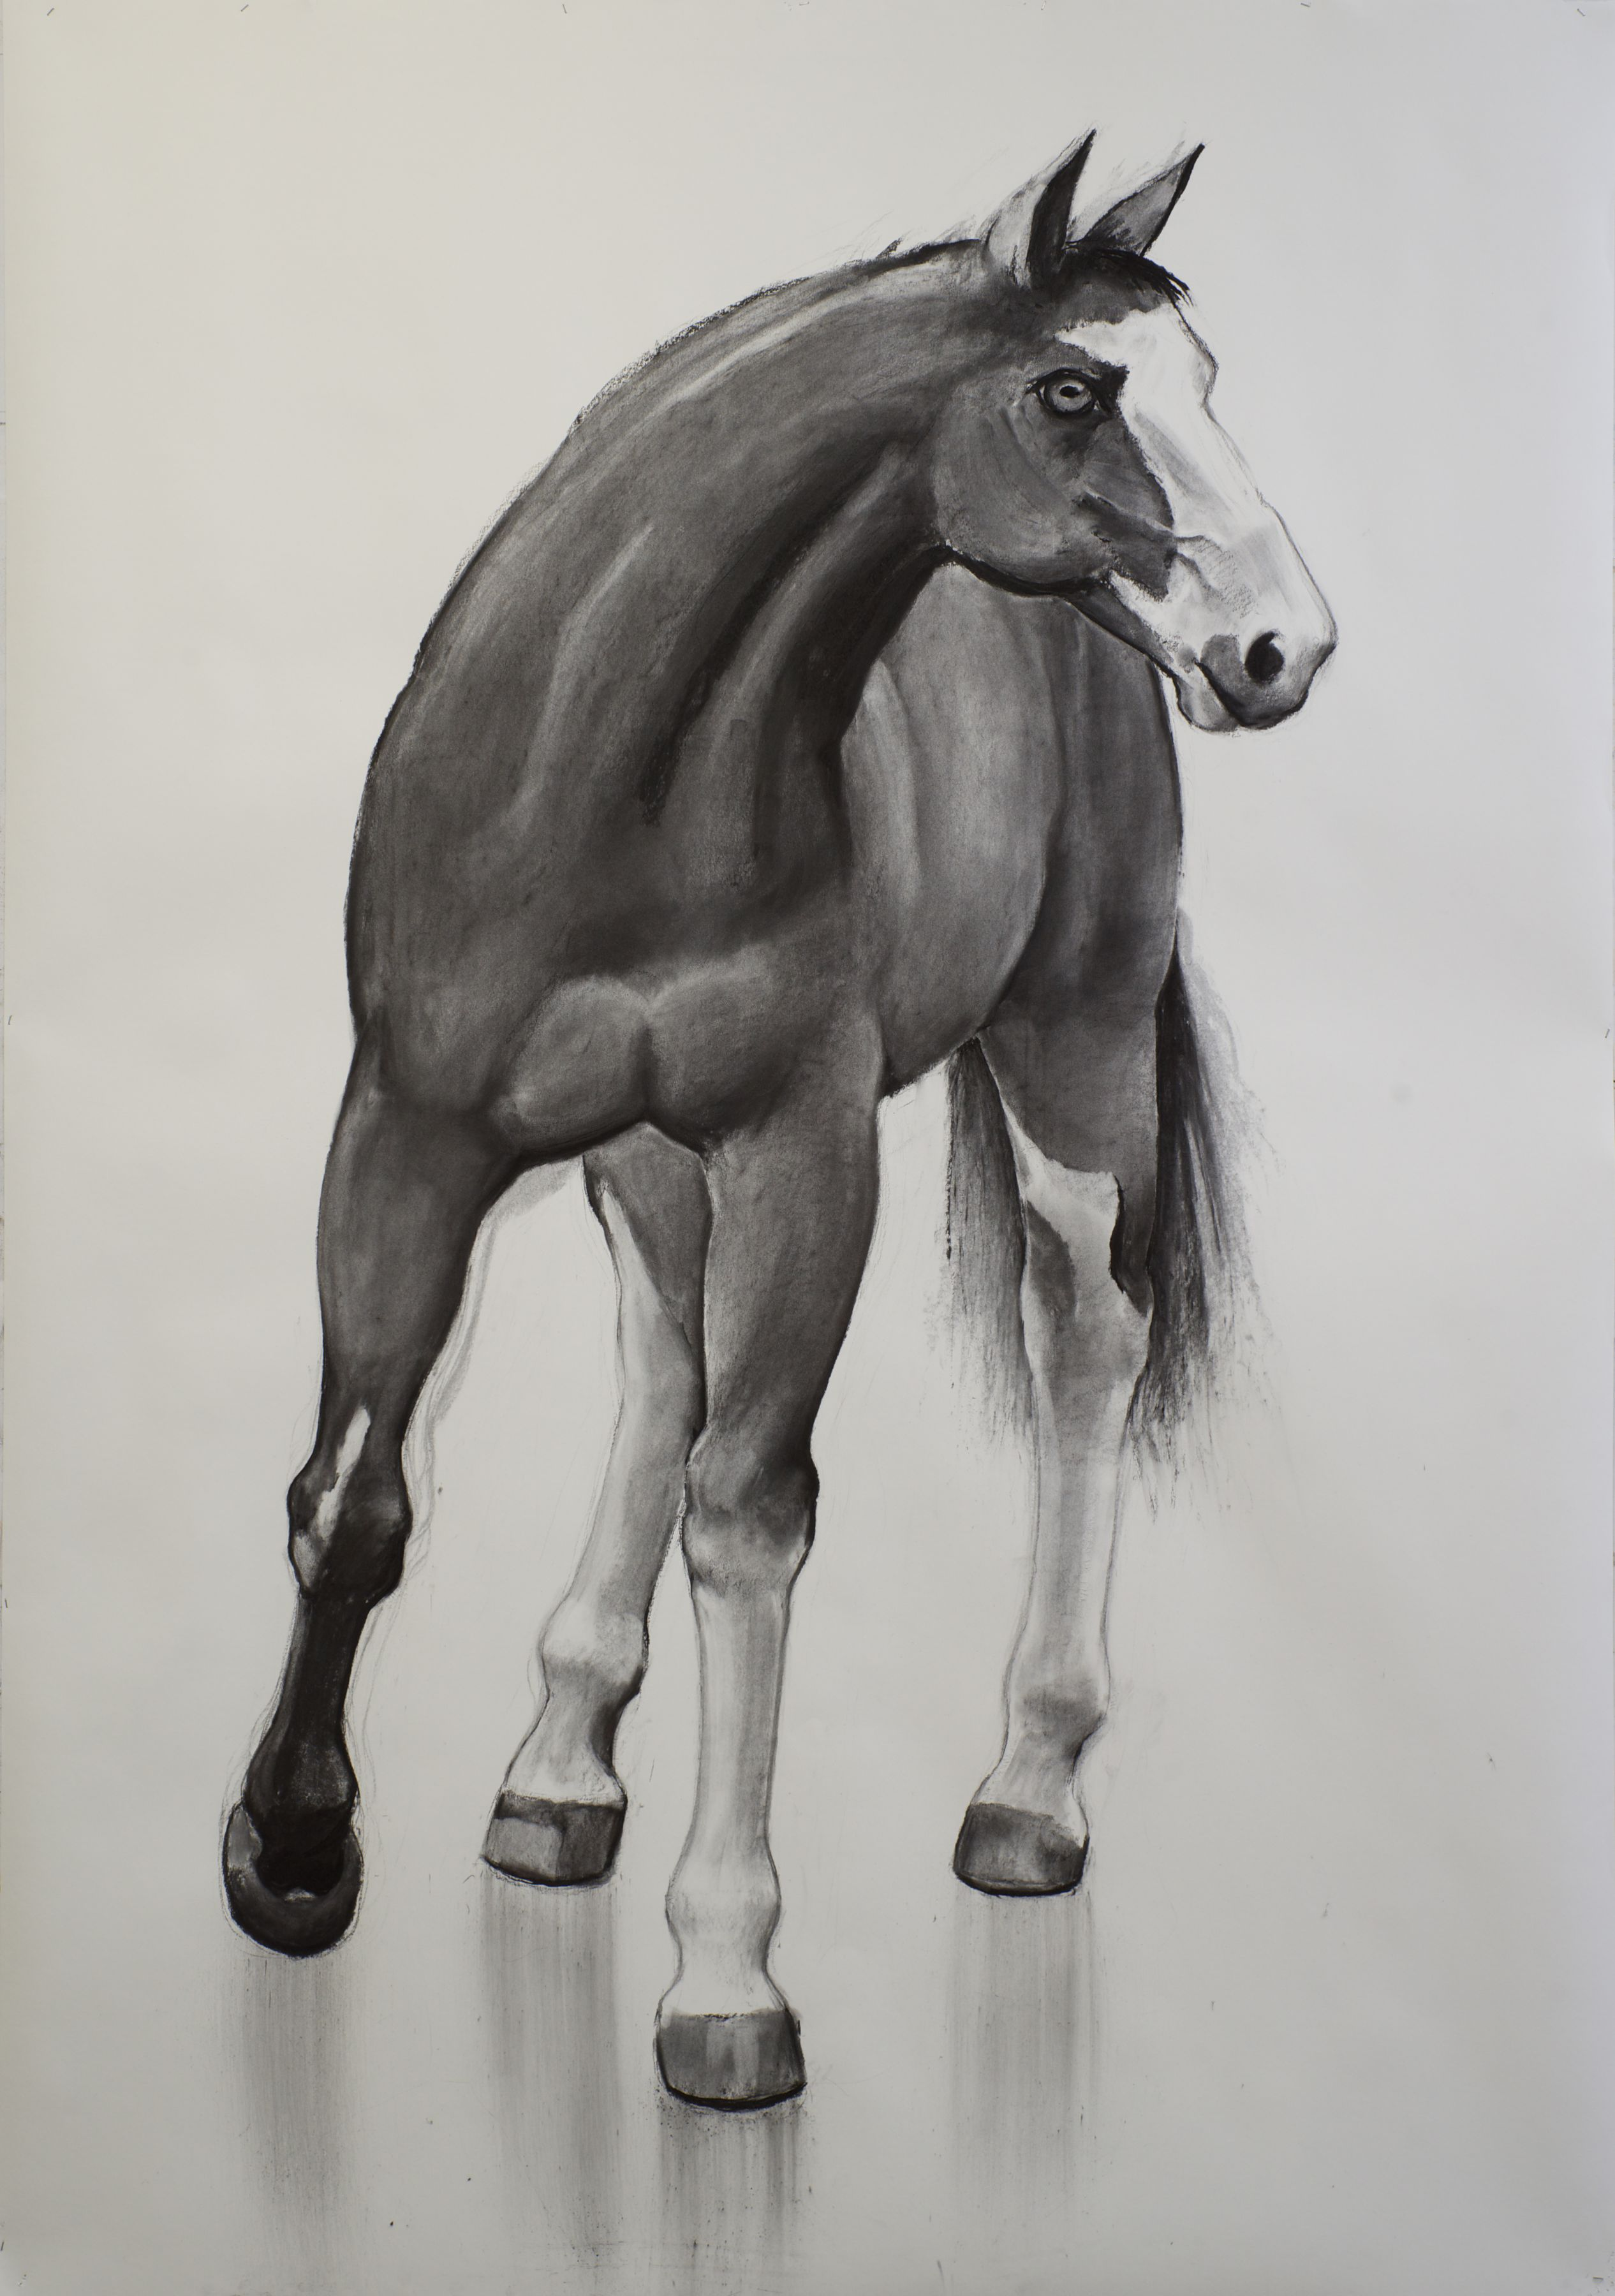 William Beckman, Mask Horse, 2017, charcoal on paper, 103 x 72 inches